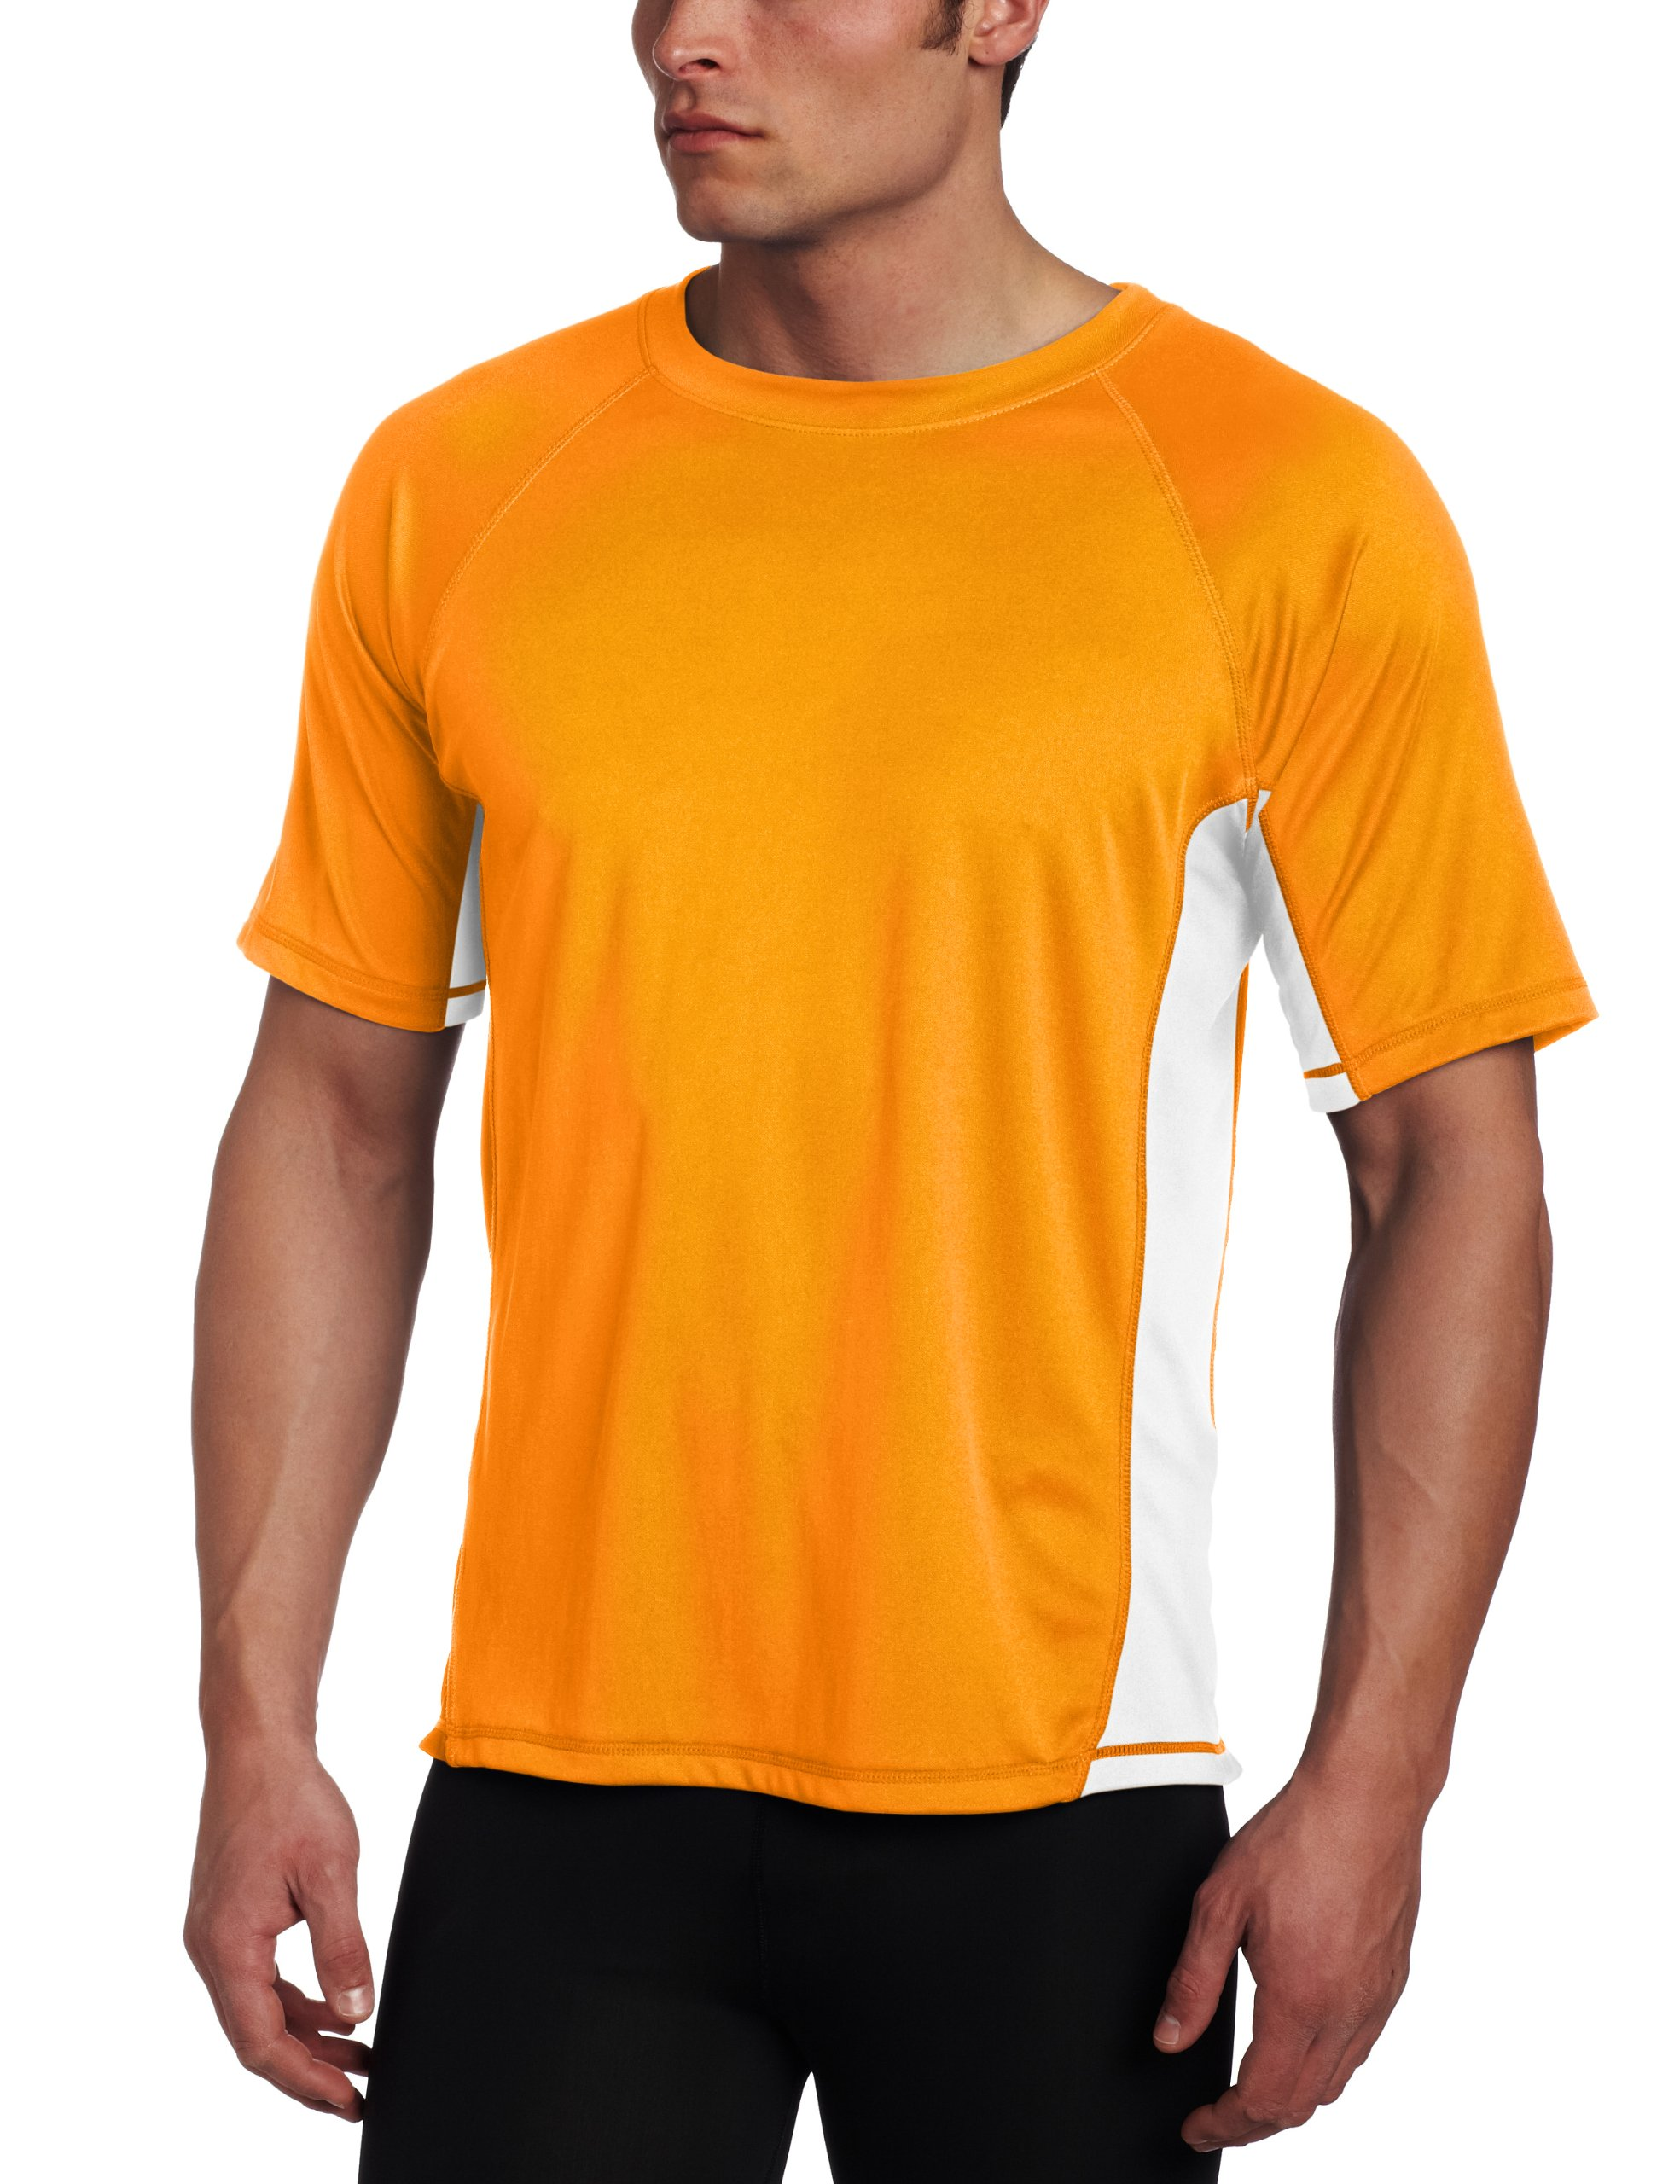 Kanu Surf Men's CB Rashguard UPF 50+ Swim Shirt, Orange, 2X-Large